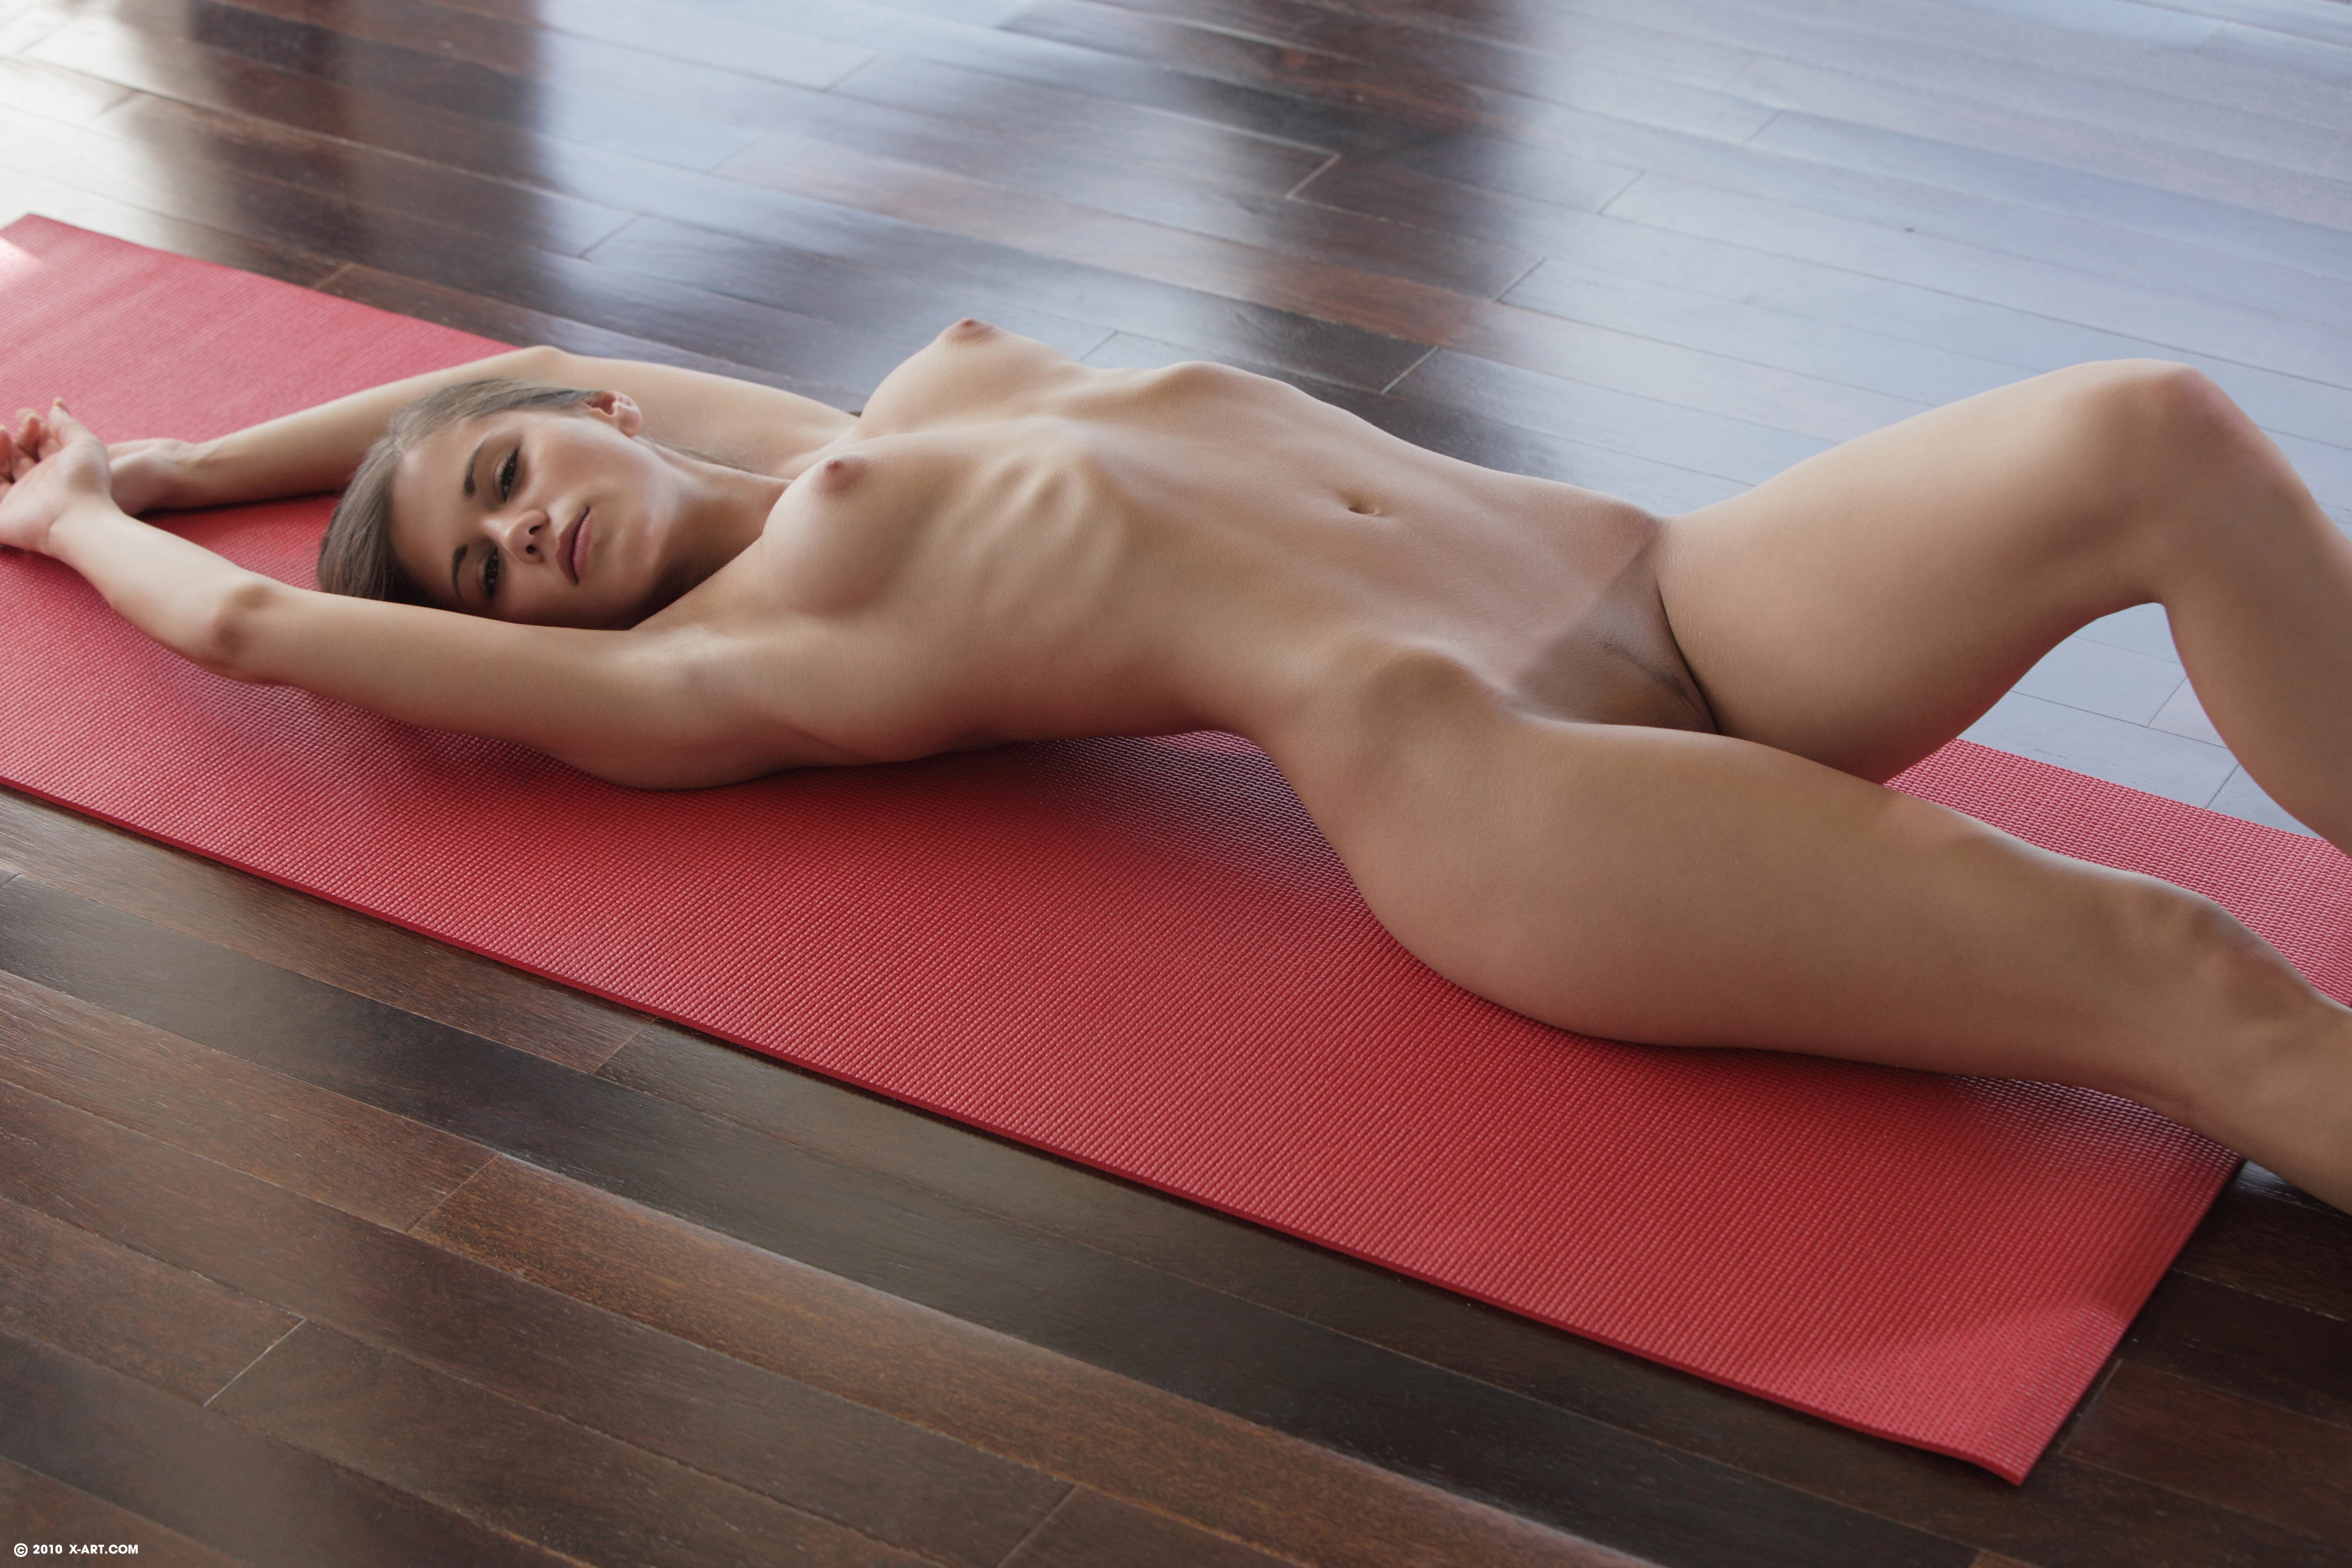 nude sexy girl hidden pic collage